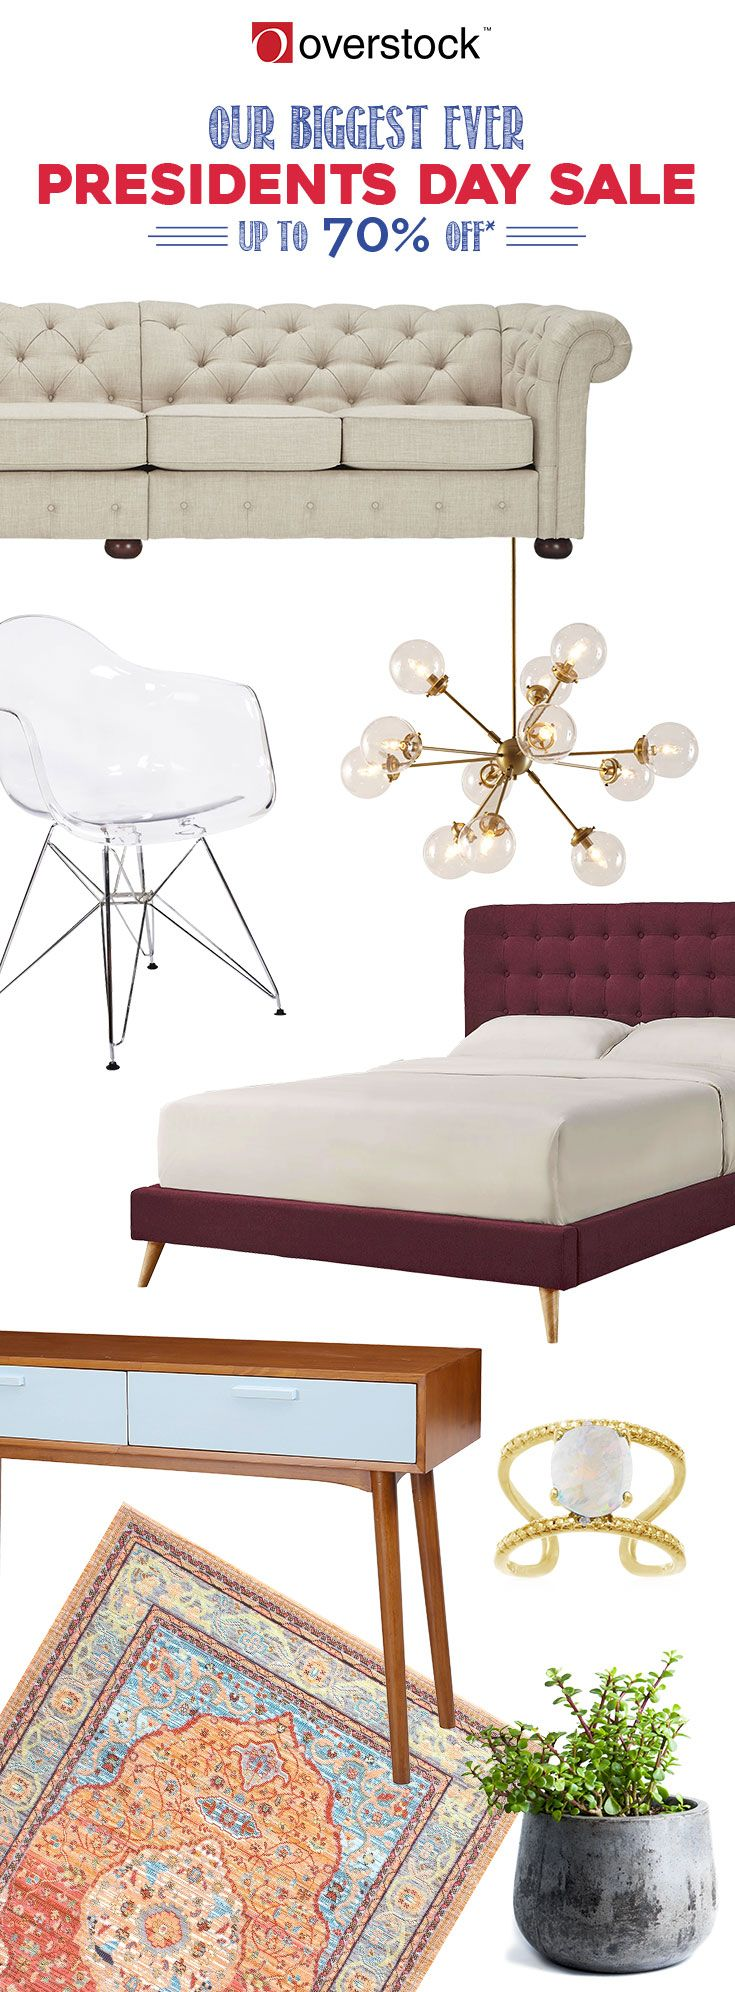 Looking for home decor at the right price? We make furniture shopping easy with our specials and sales. Overstock is dedicated to offering stylish home decor at the right price. Right now you can lock in the best deal of the year with savings up to 70% off during the Presidents' Day Sale. Hurry! Sale will end on Thursday, 2/23/17.